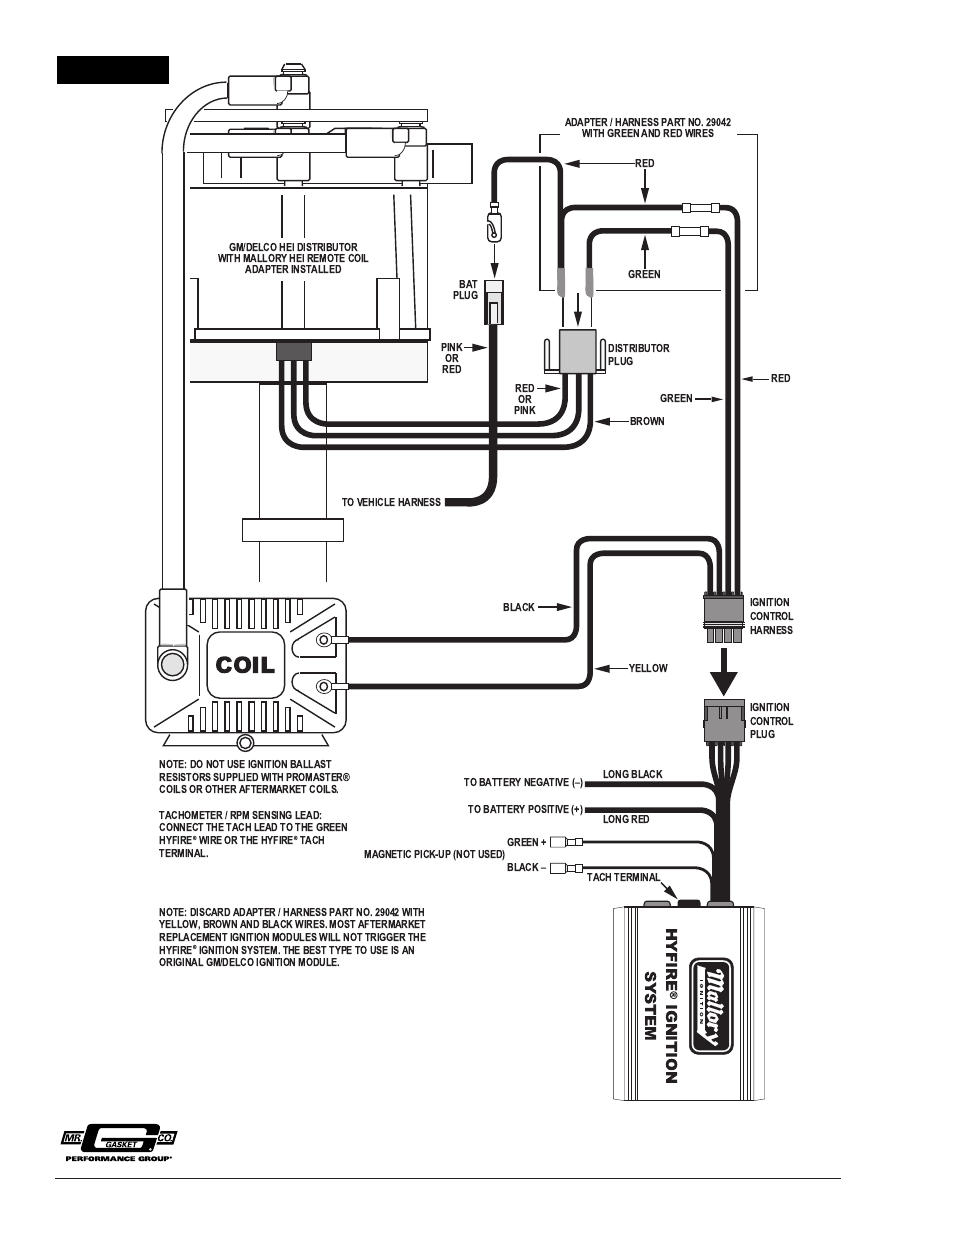 Msd 8360 Wiring Diagram Manual Of Mallory To Distributor For Msd6al 8360m Pro Billet